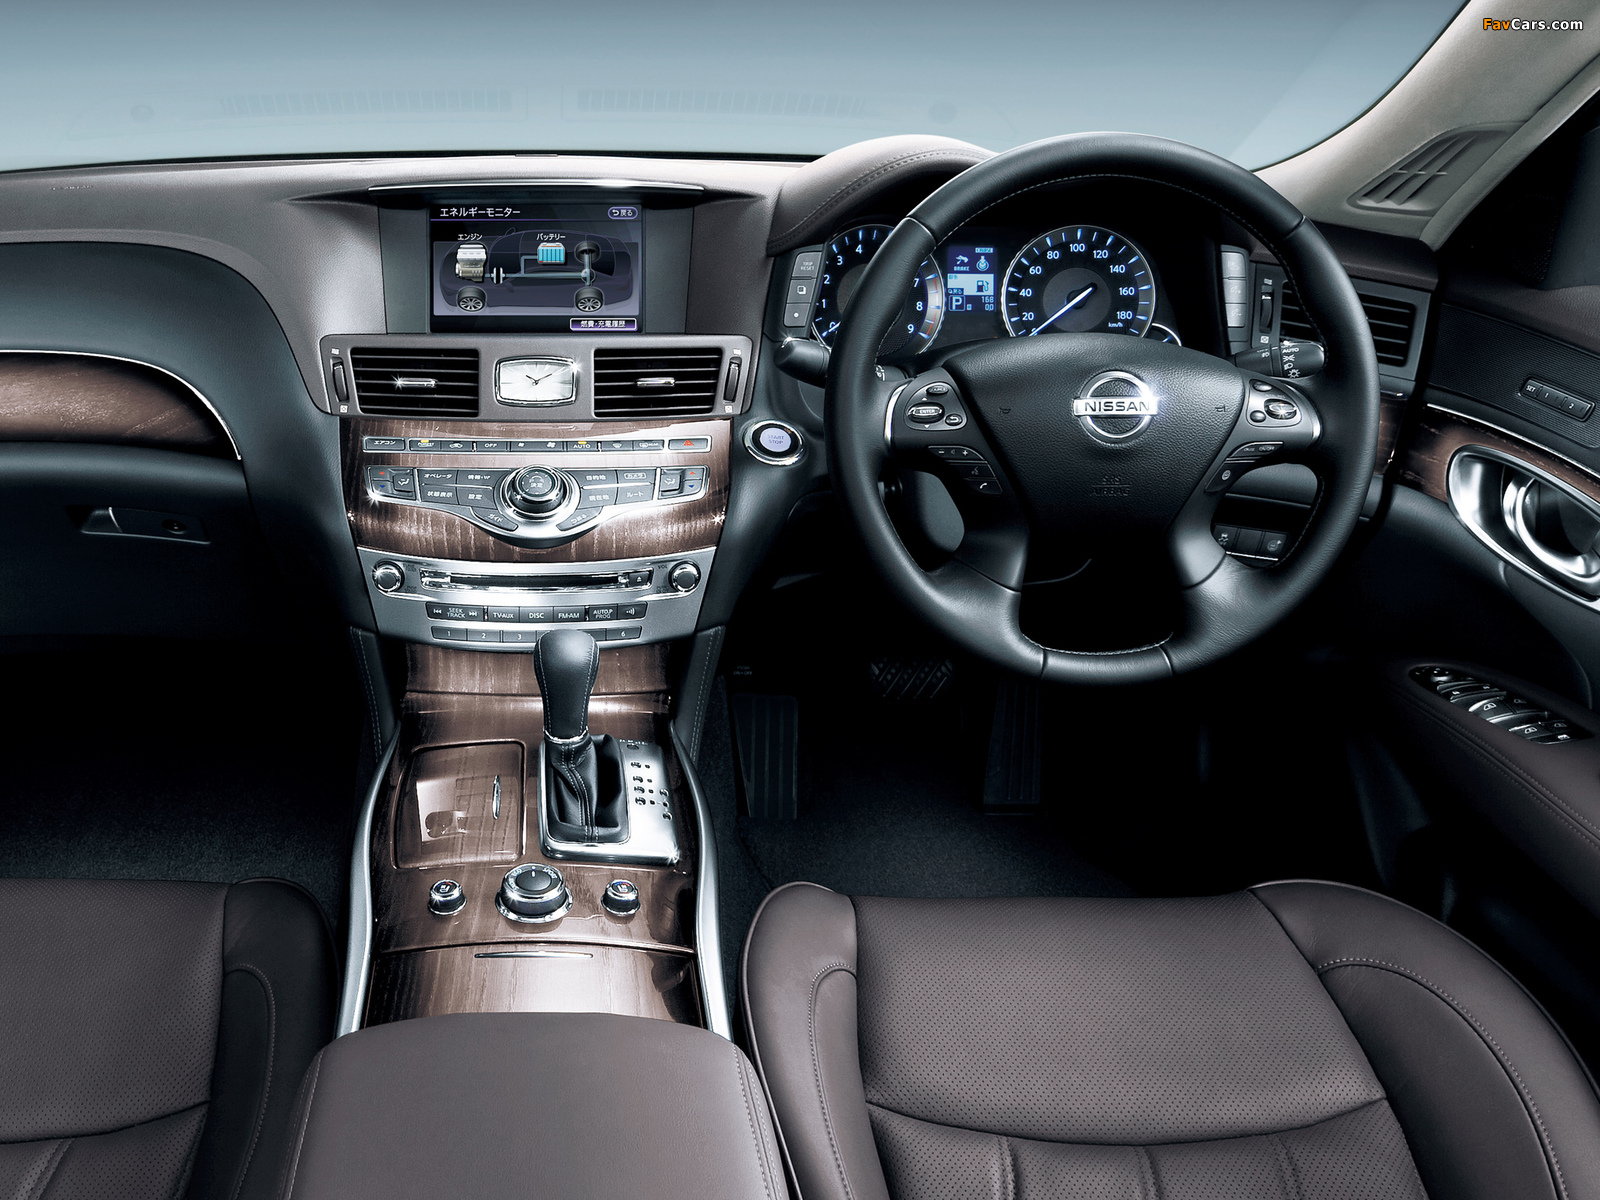 Wallpapers Of Nissan Fuga Hybrid Y51 2011 1600x1200